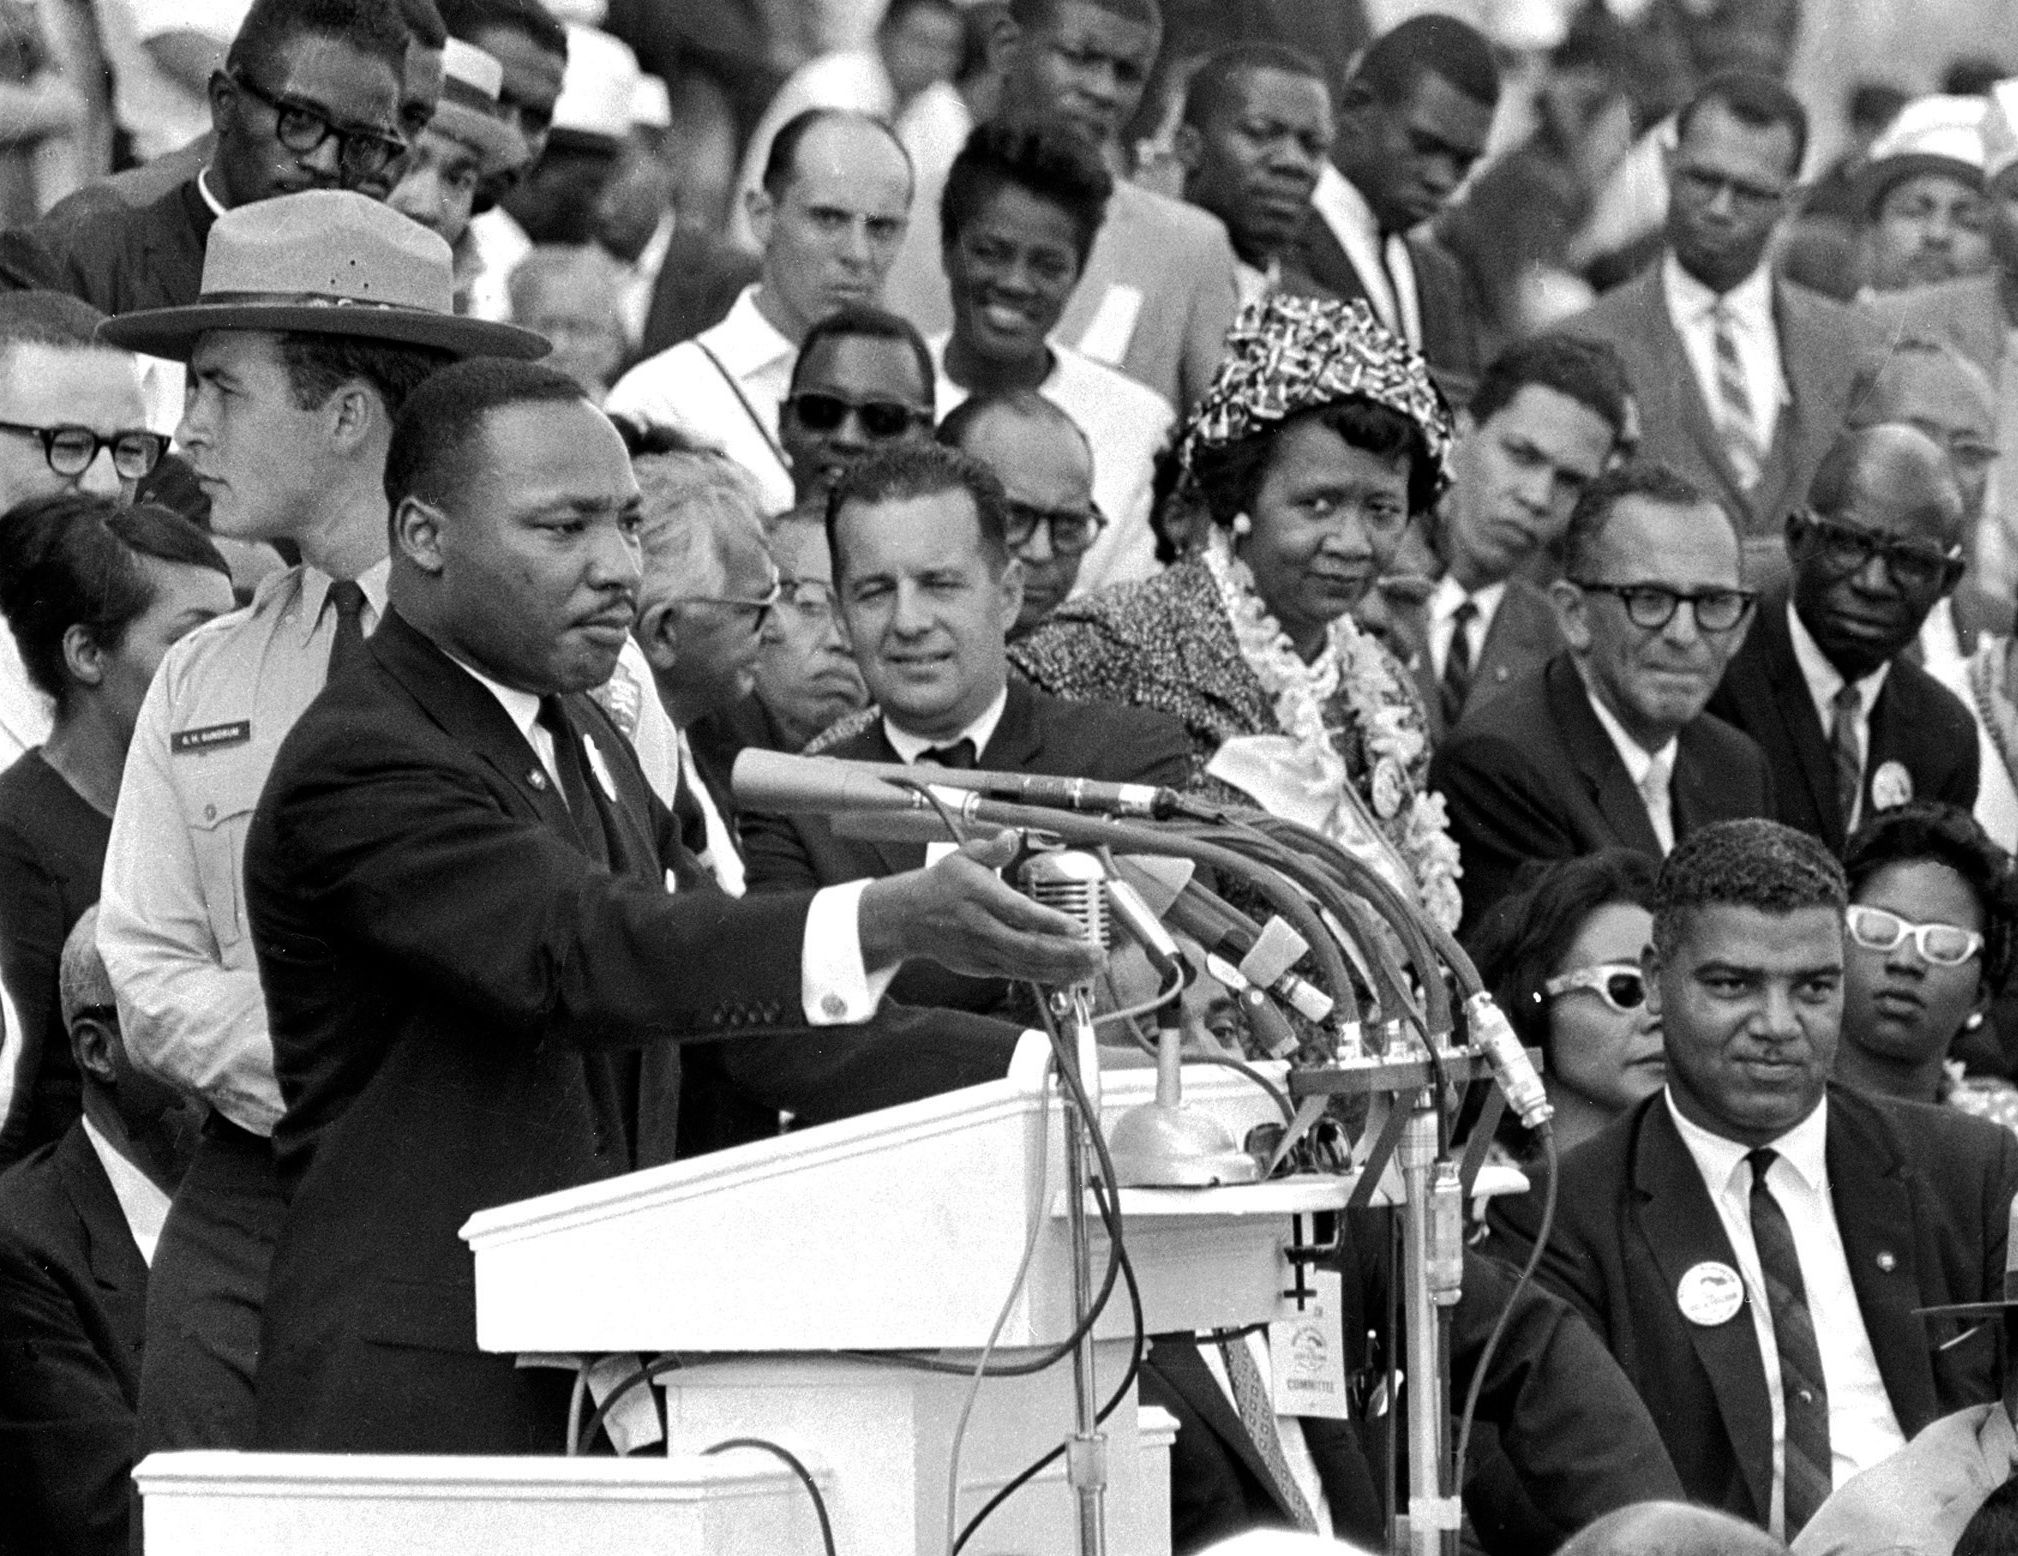 dr martin luther king a dream Ahead of the 50th anniversary of dr martin luther king jr's assassination, we asked prominent voices to share their memories and reflect on the progress toward achieving king's dream of justice.